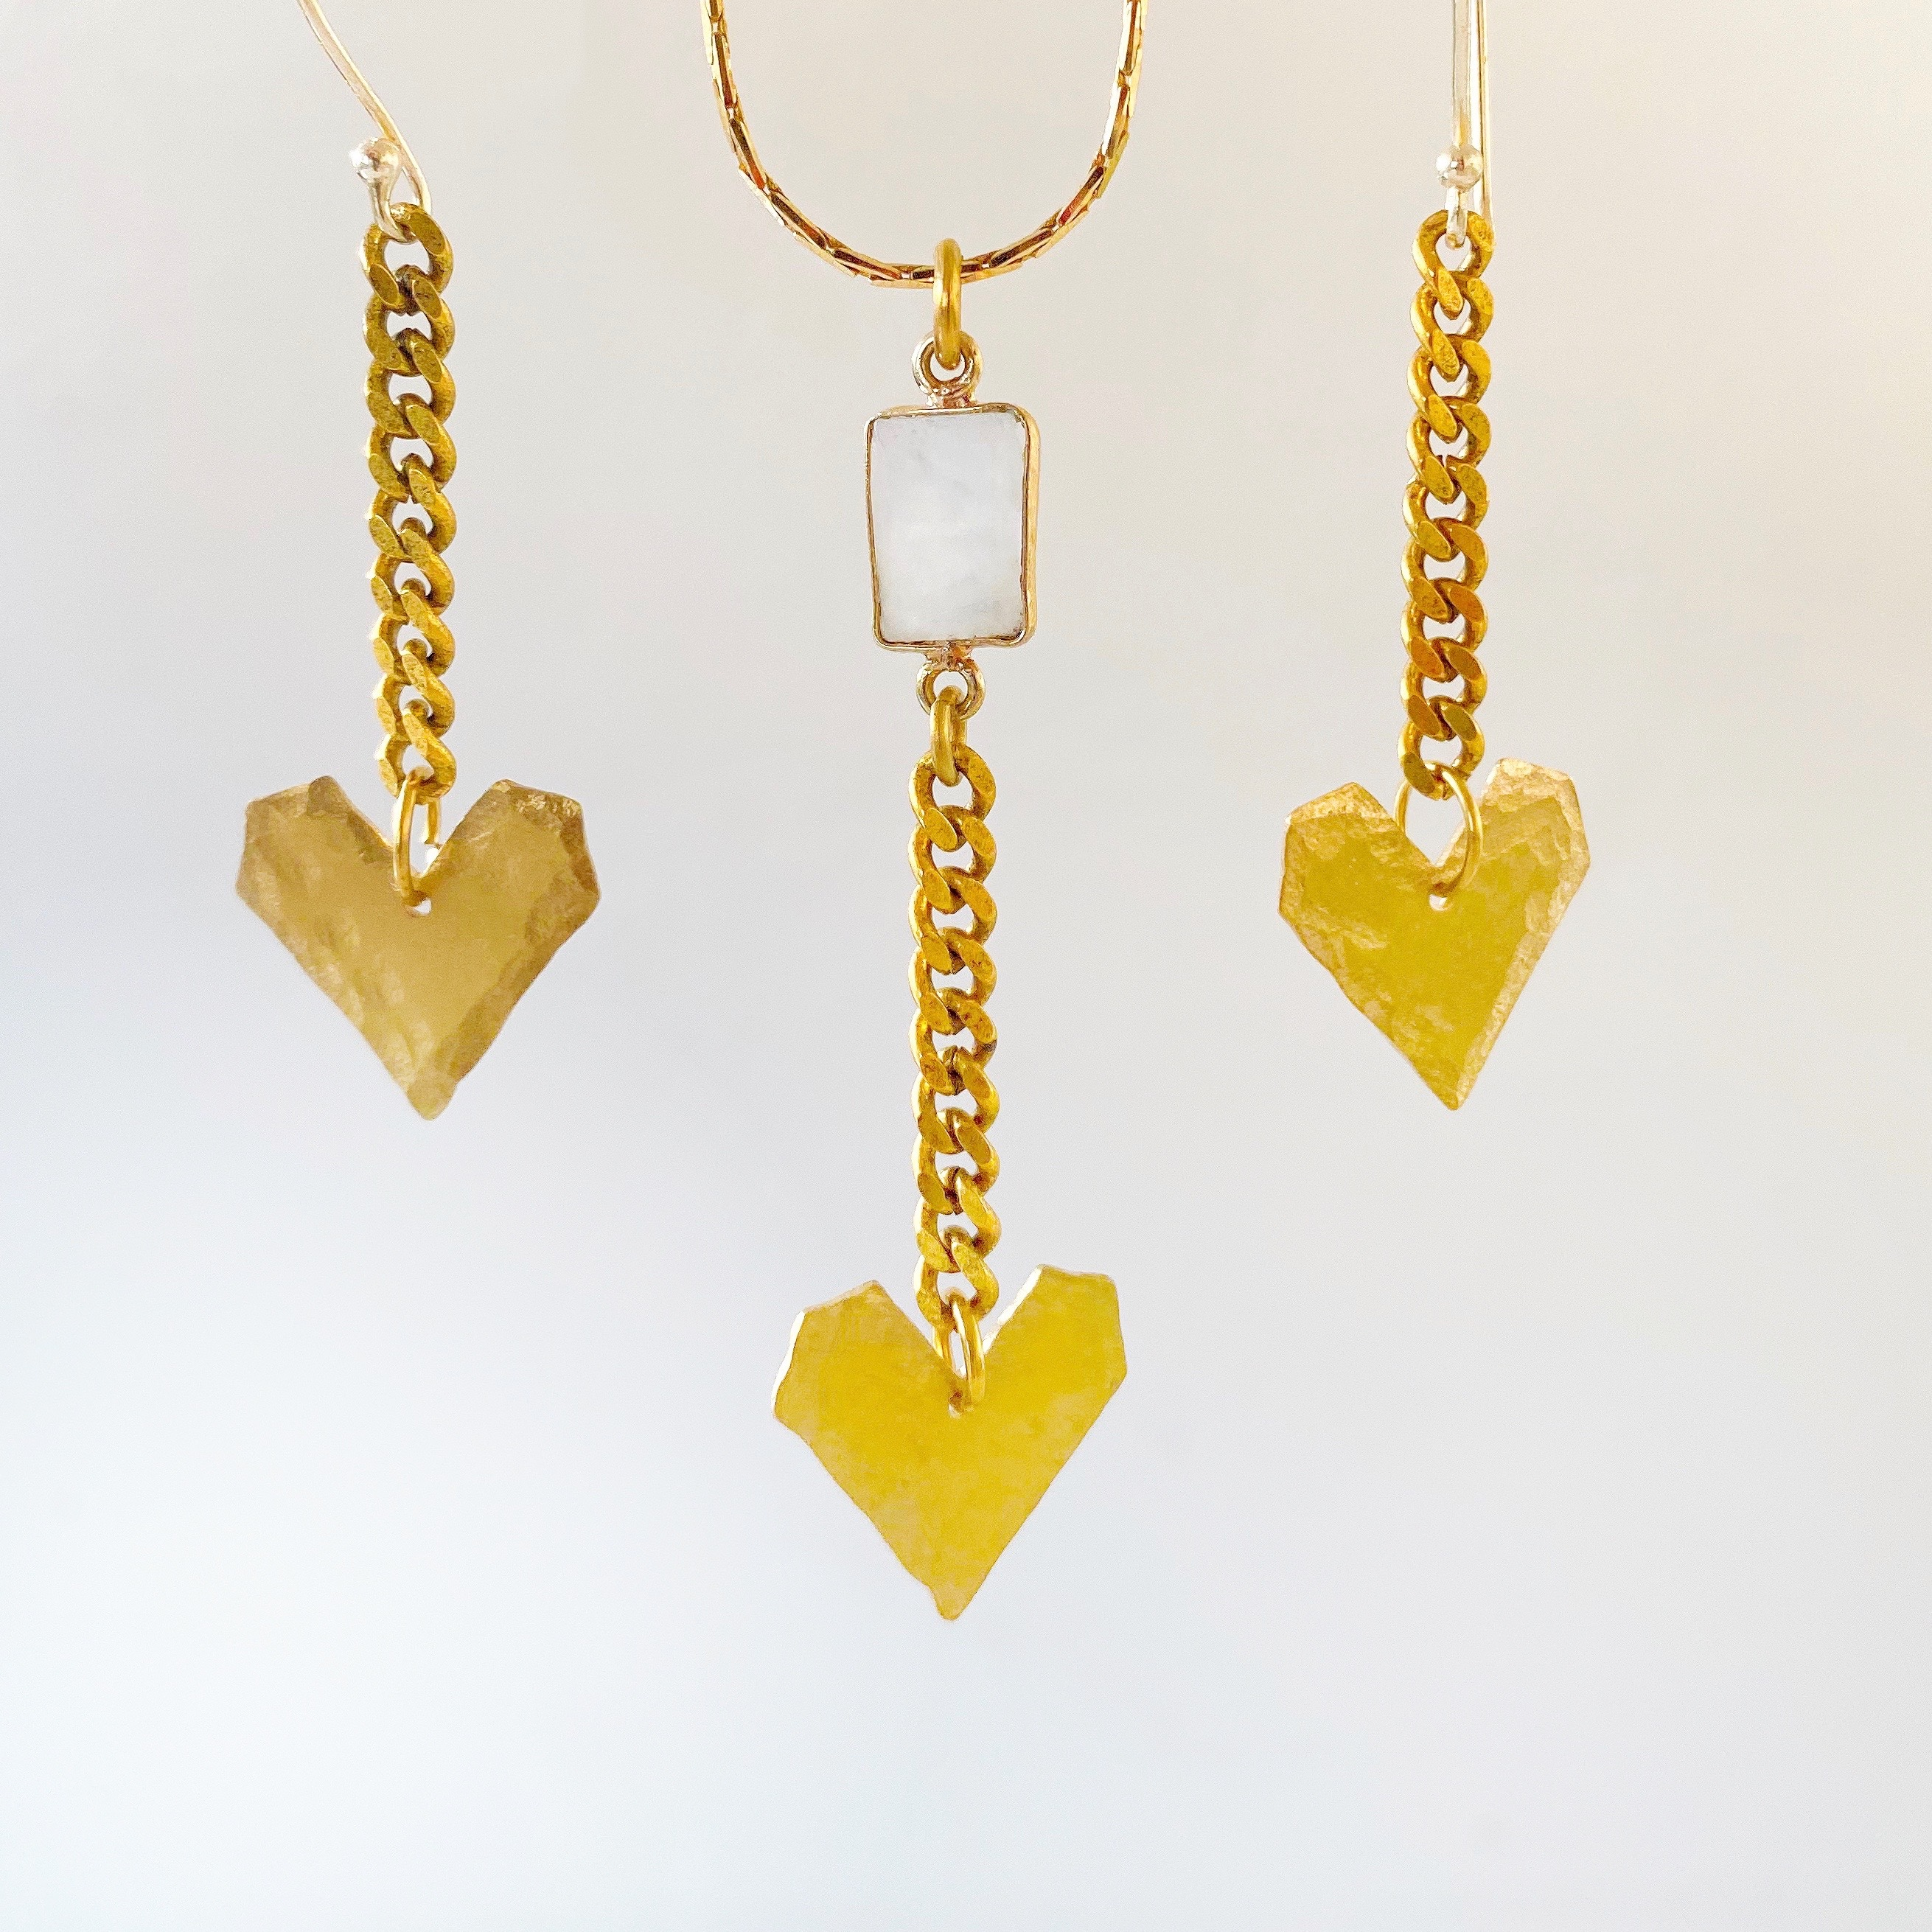 heart necklace and earrings brass jewelry valentine's day gift